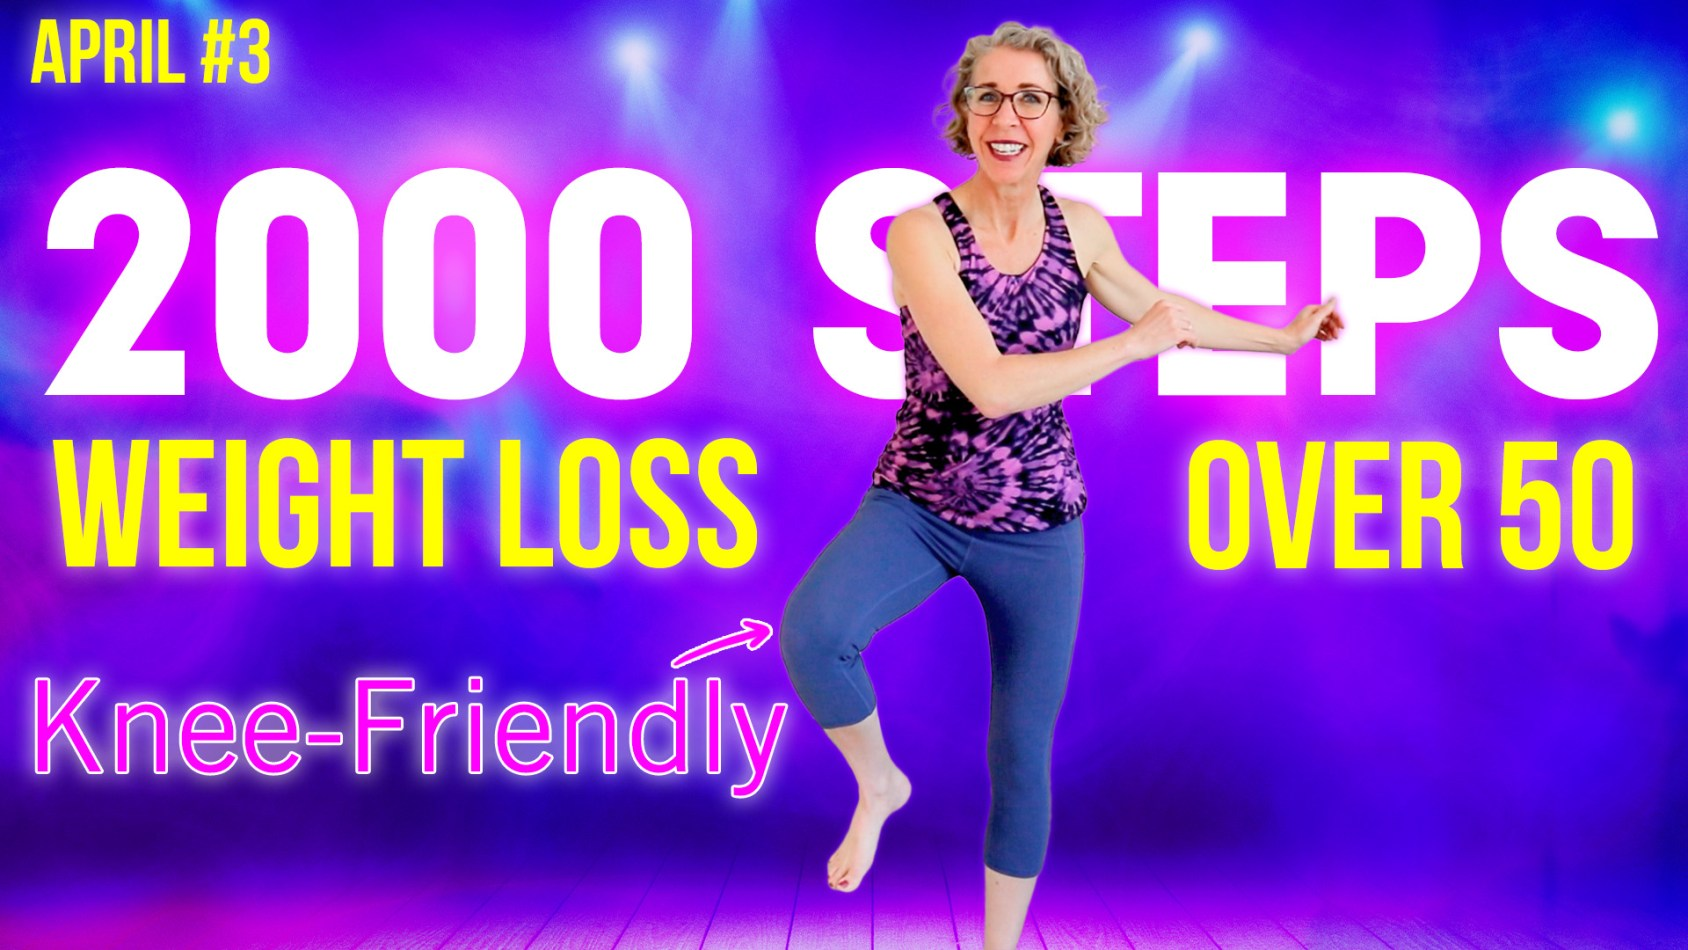 Knee-Friendly: NO Squats or Lunges! POWER WALK Workout over 50 ???? April Day 3